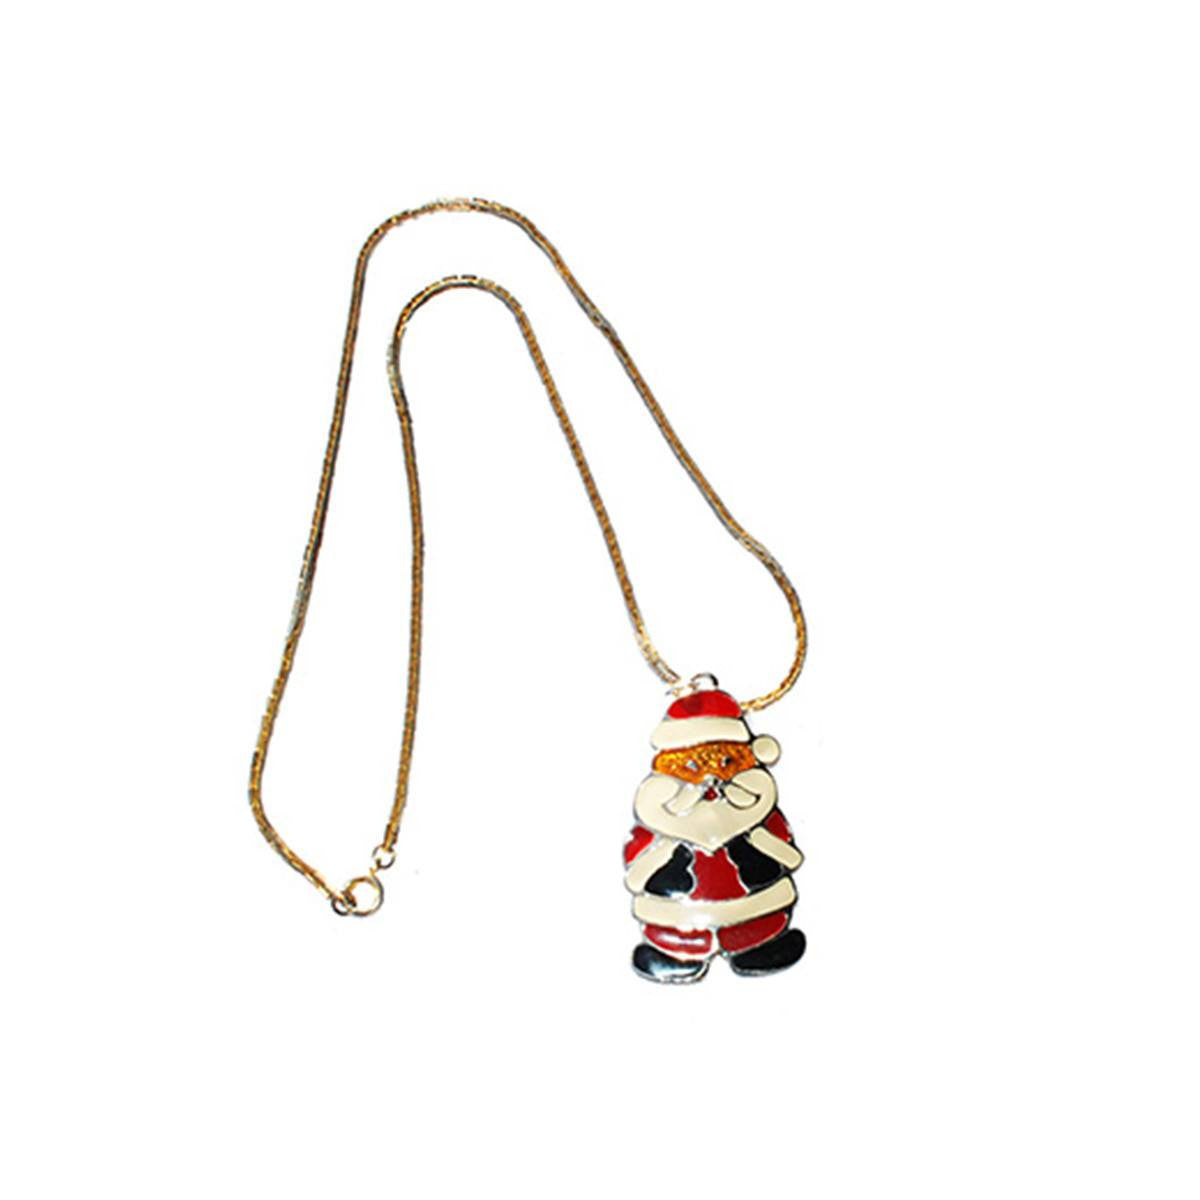 "Santa Claus Pendant Necklace by Wallace Silversmiths, 20"" Chain"